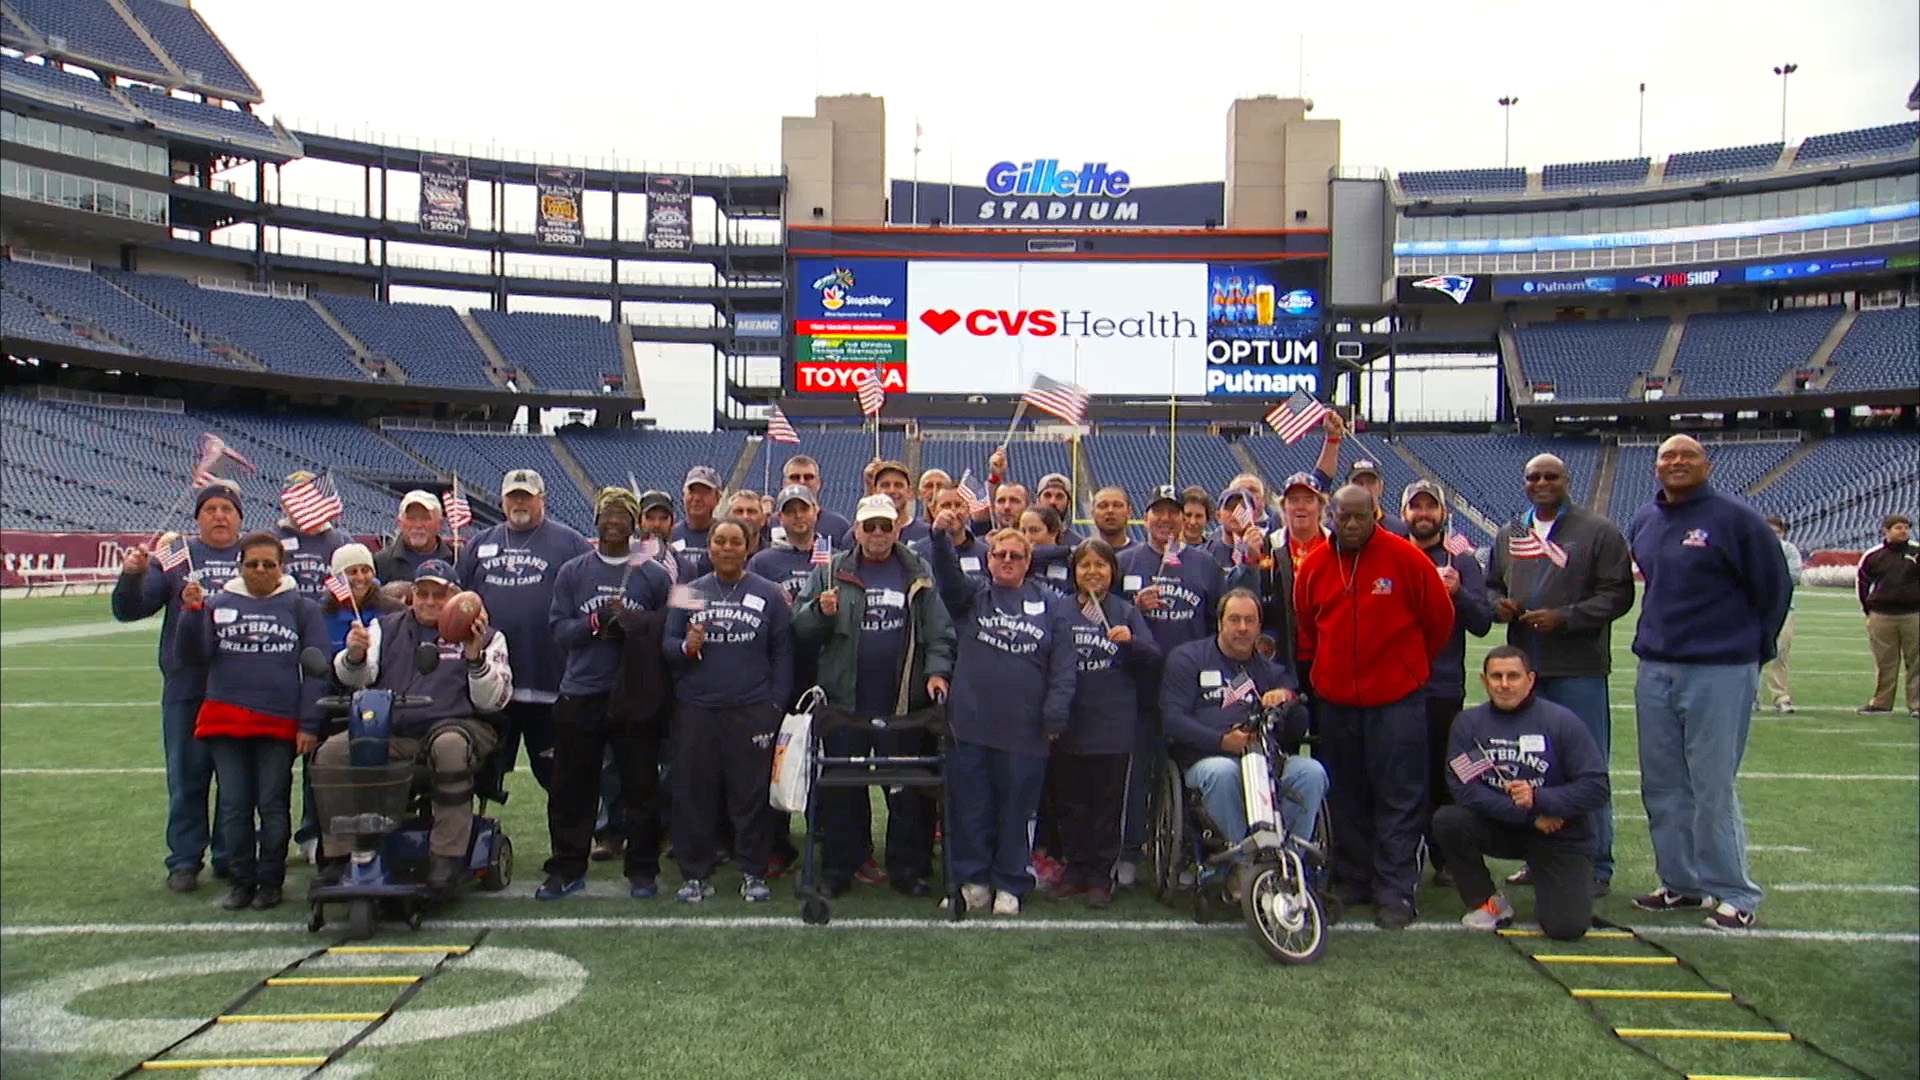 Veterans Skills Camp at Gillette Stadium 2014